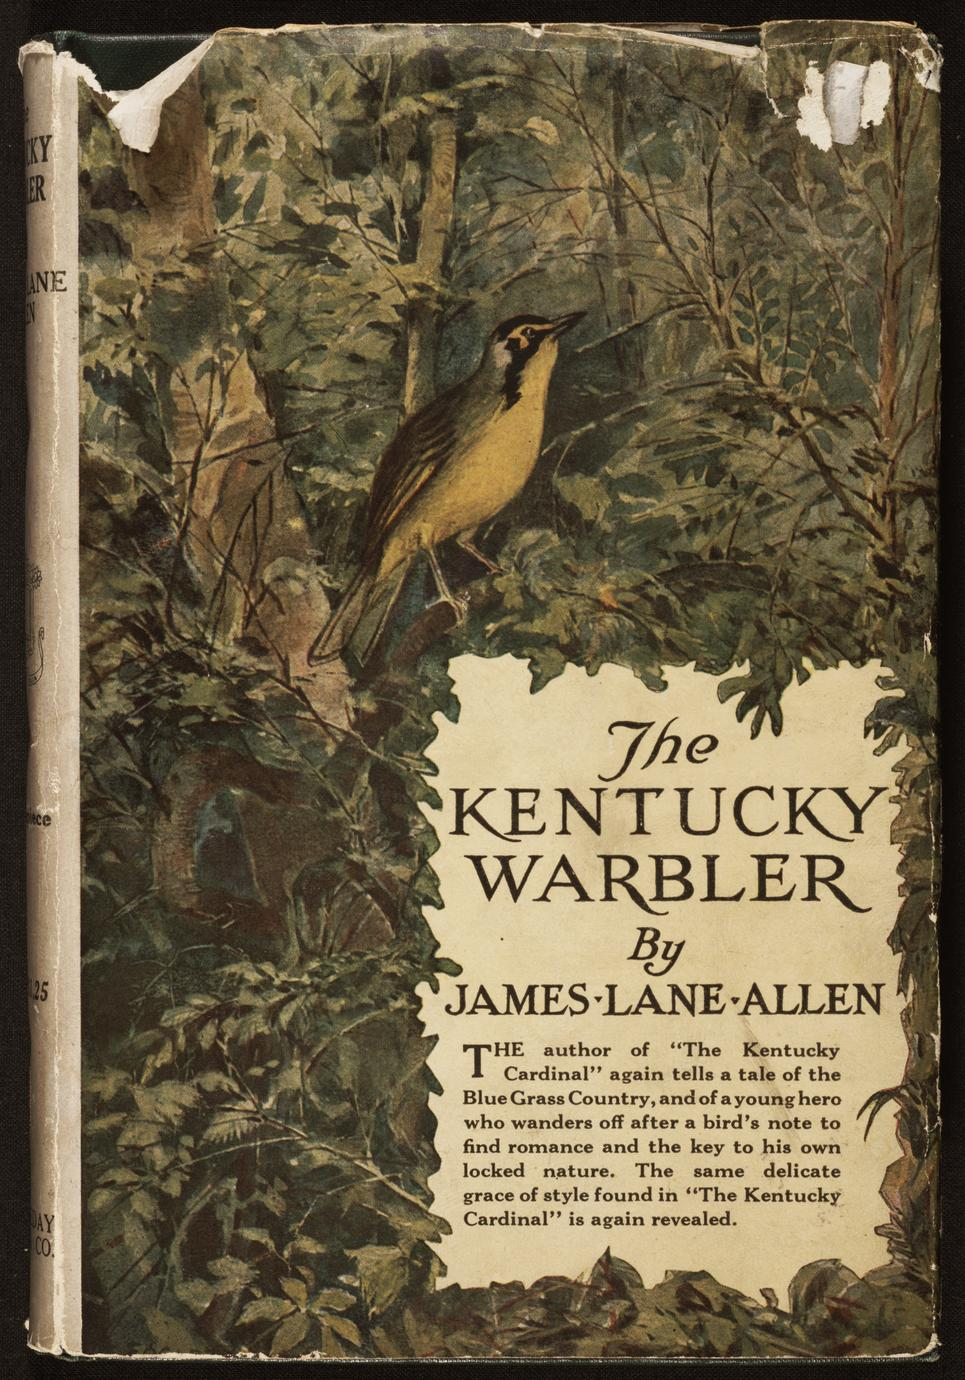 The Kentucky warbler (1 of 3)